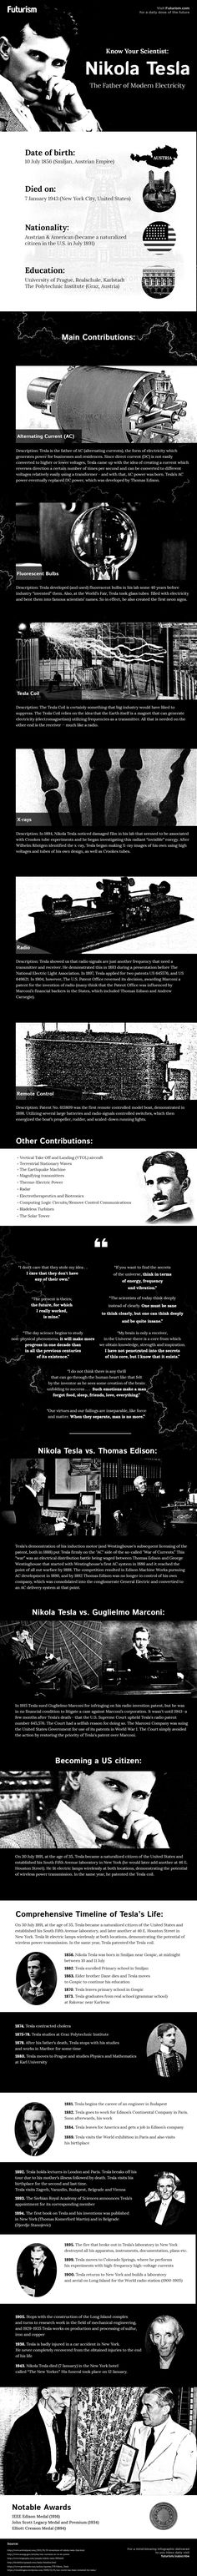 Nikola Tesla: Everything You Need to Know About the Man Behind the Science